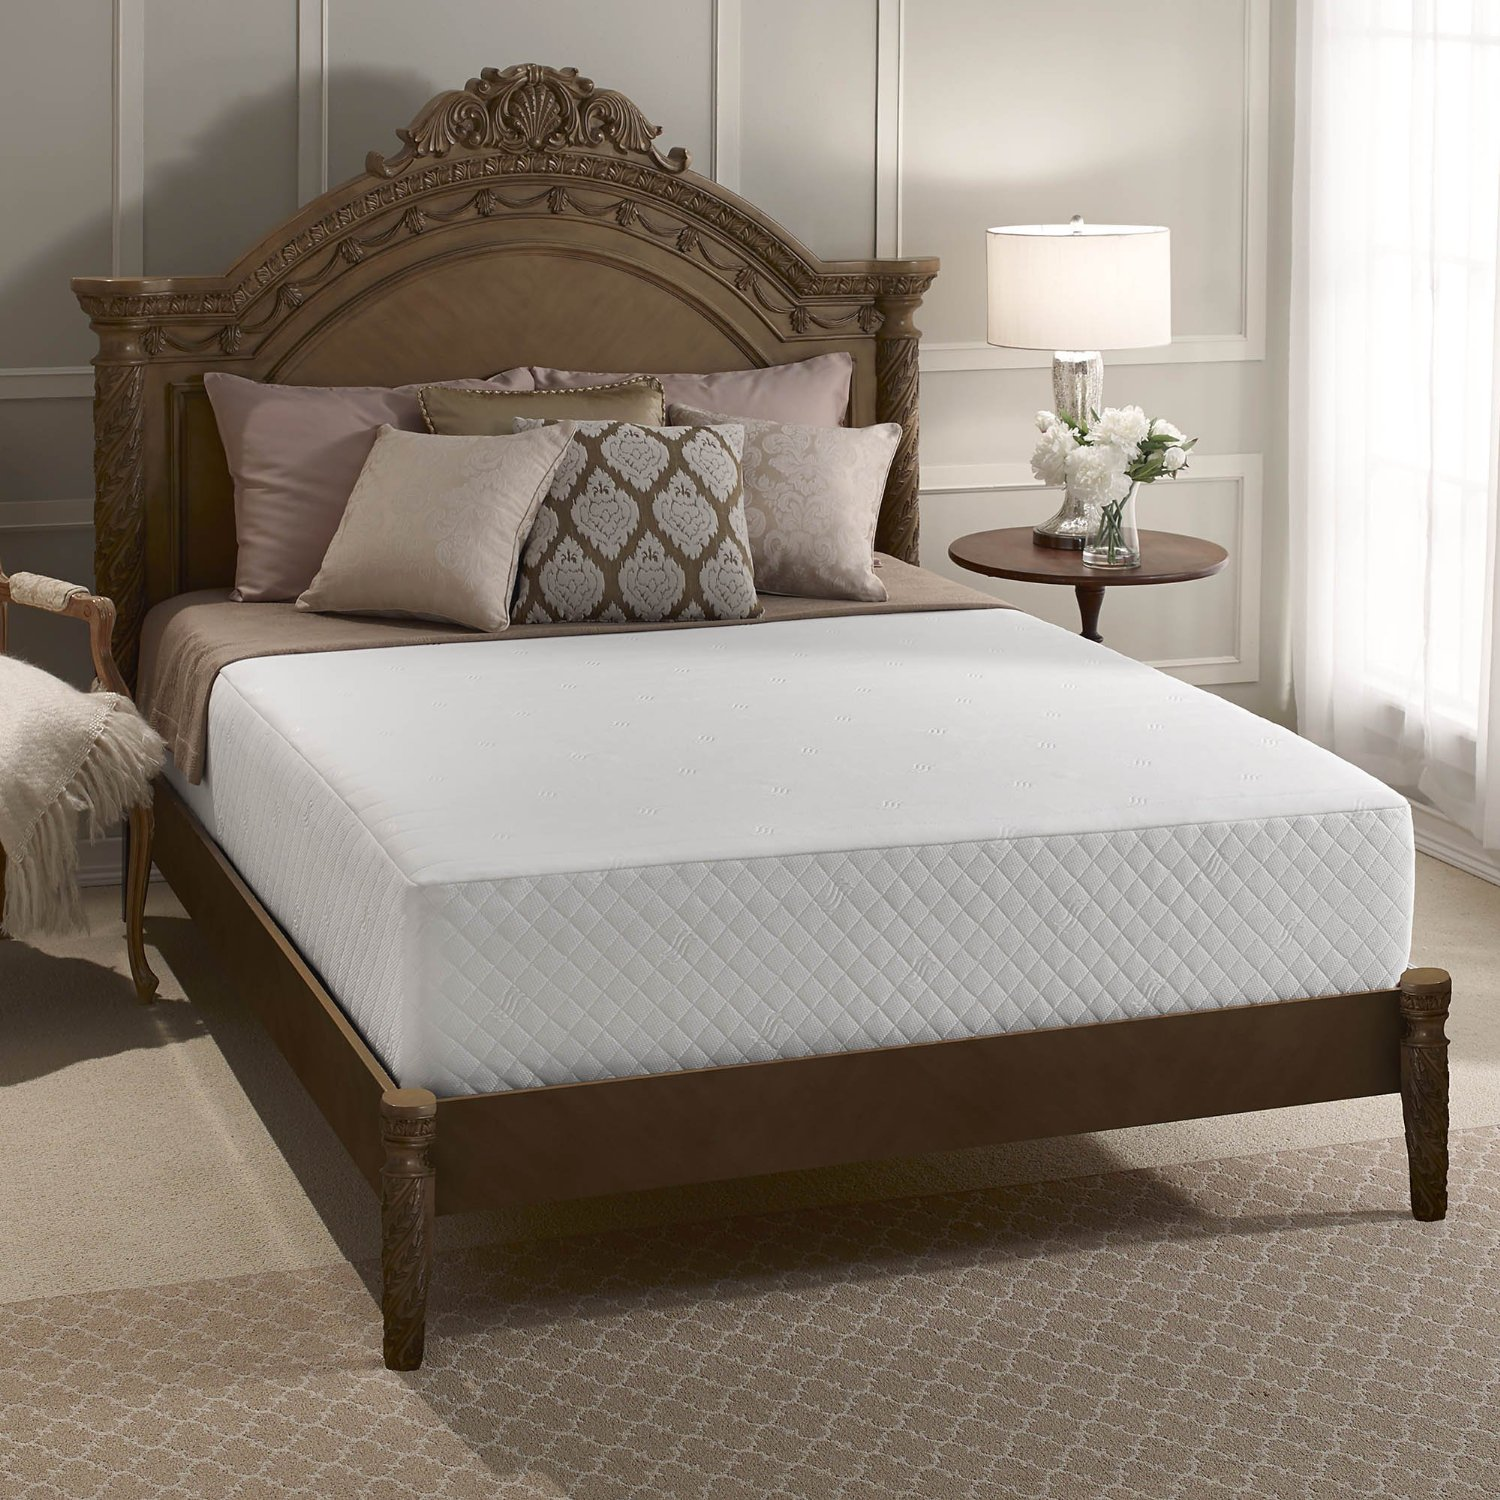 beausommet does sleeper queen many striking is intriguing much size how mattress side a inch memor of memory foam tempurpedic price wonderful contemporary formidable are for years last do sleepers toppers favorable review best engaging full